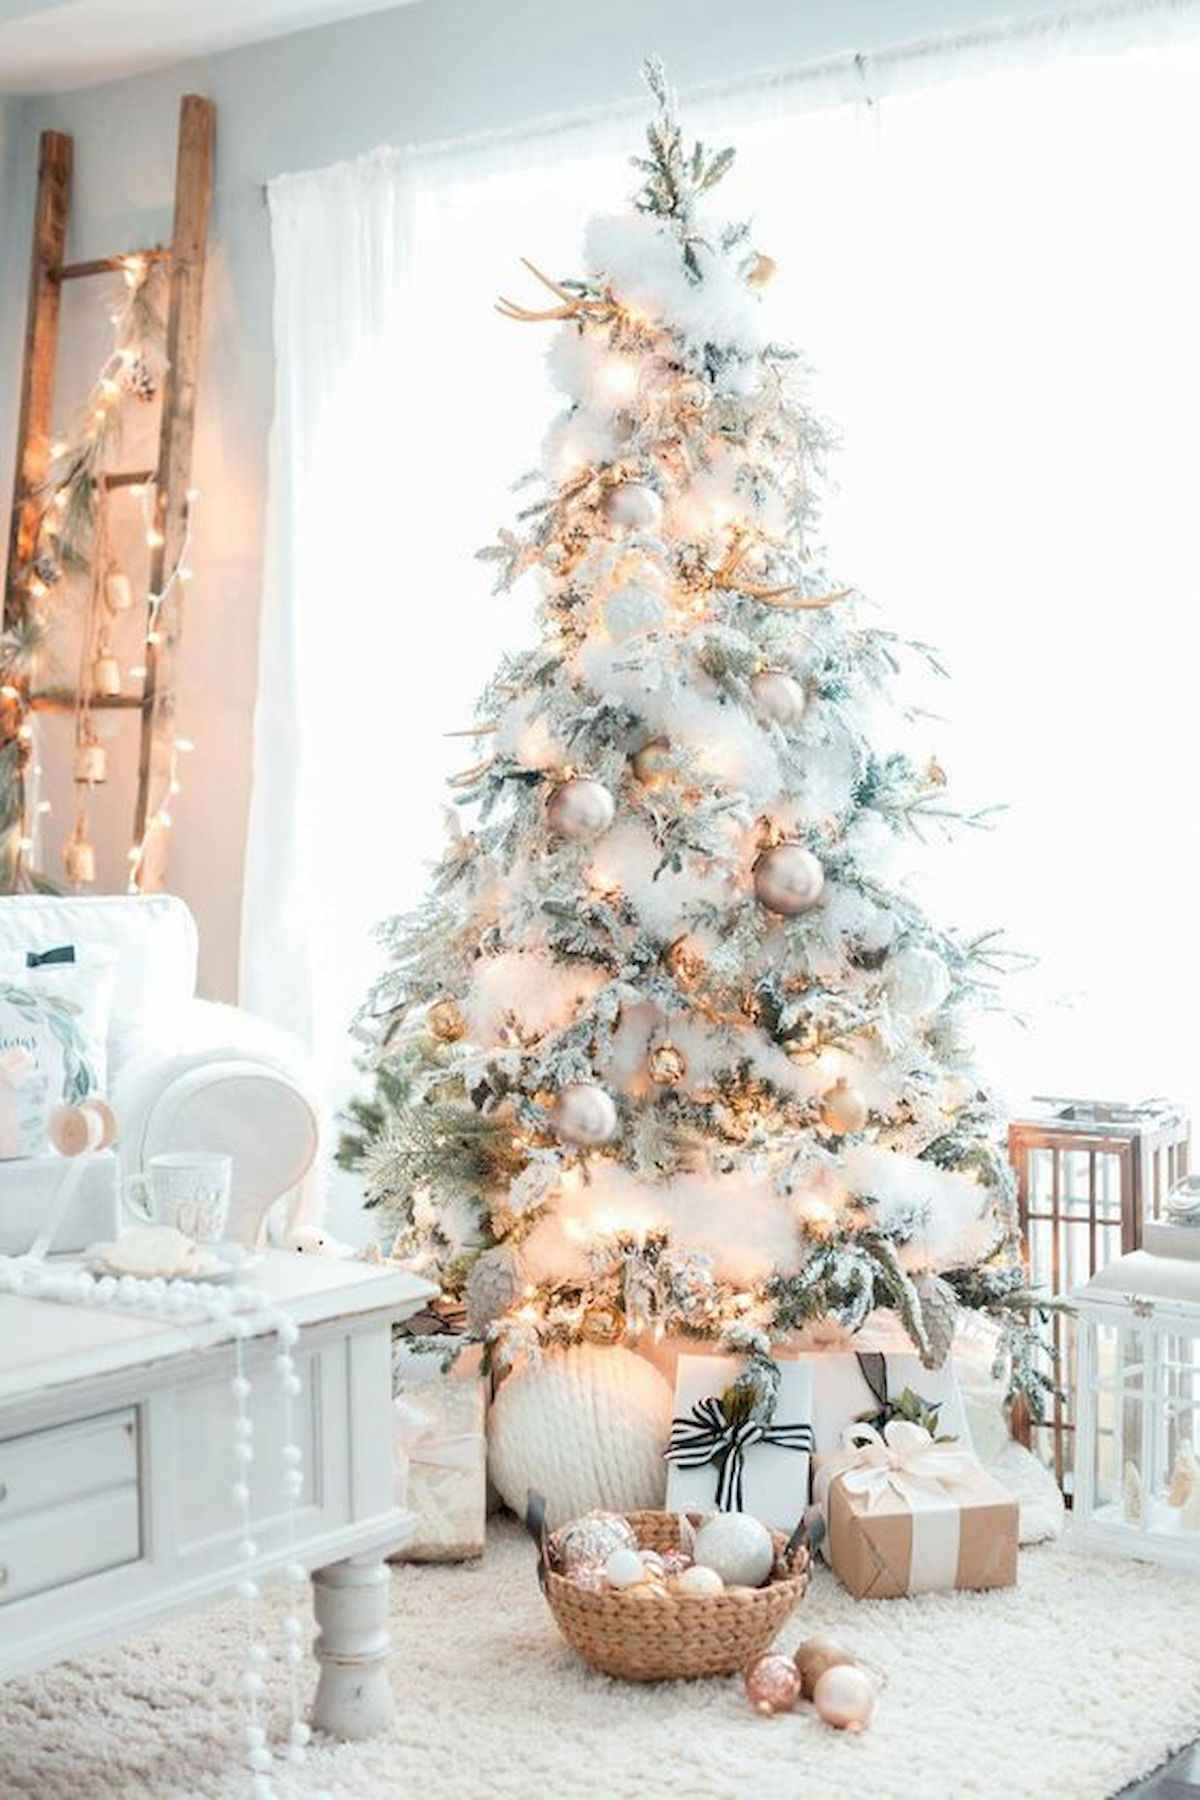 60 awesome christmas tree decorations ideas (56)